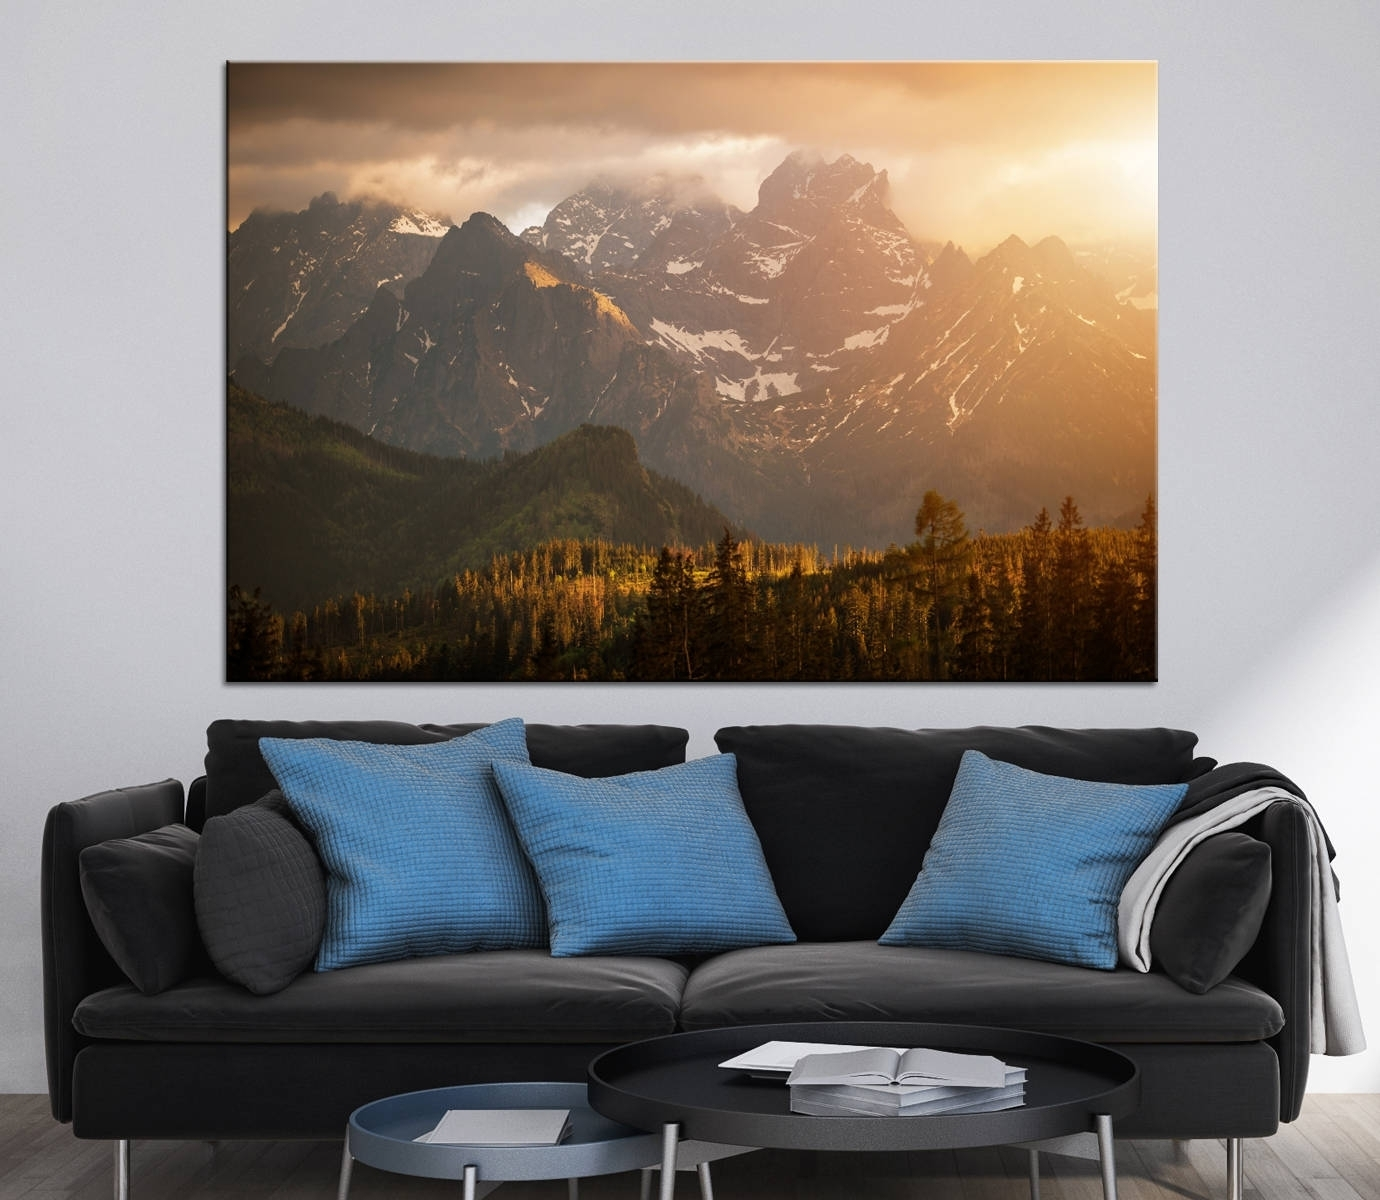 New Canvas Wall Art Nature | Wall Decorations With Most Current Nature Wall Art (Gallery 3 of 20)